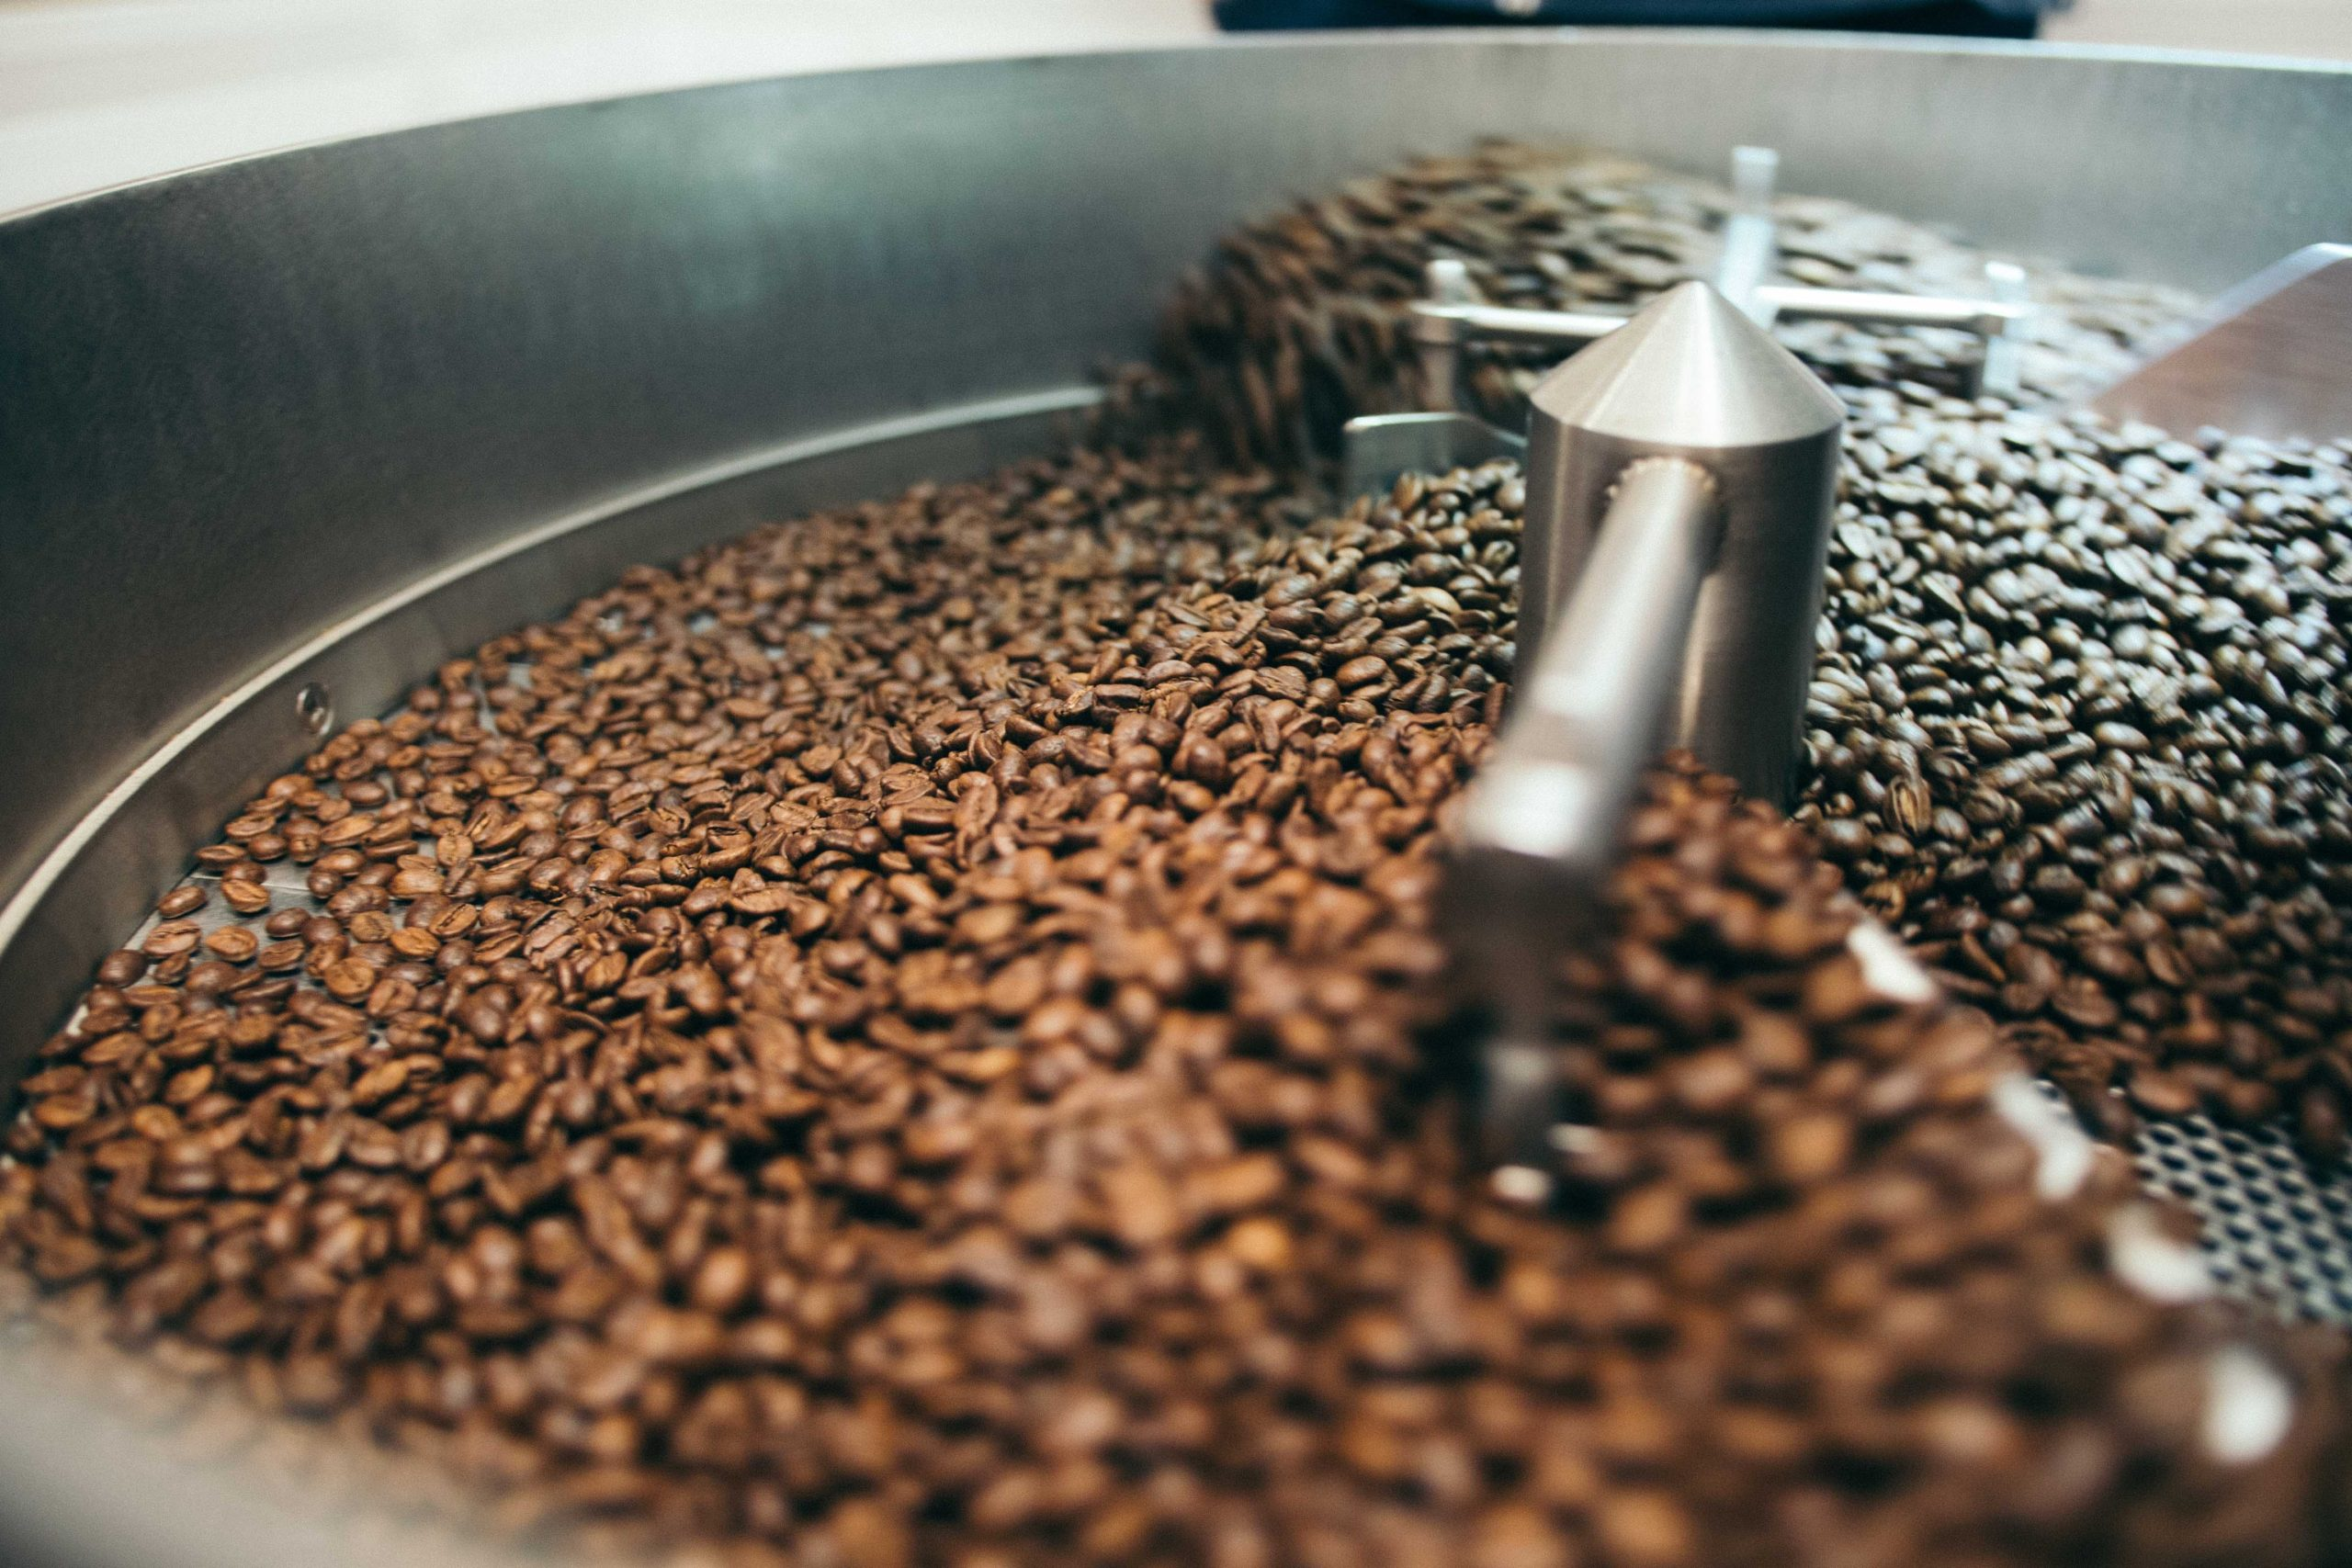 a coffee roasting machine in operation